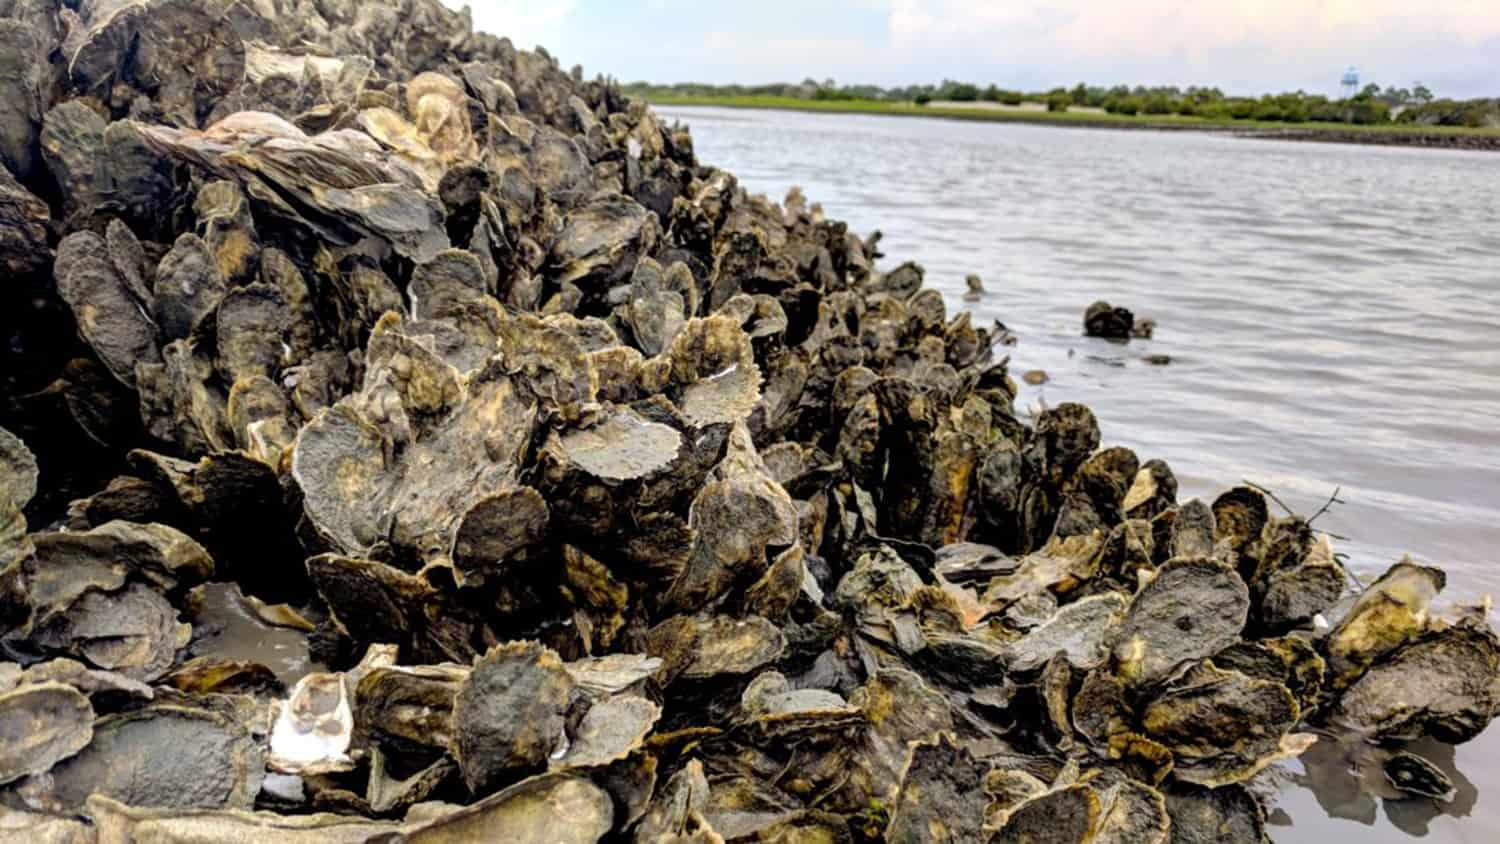 an oyster reef revealed by low tide